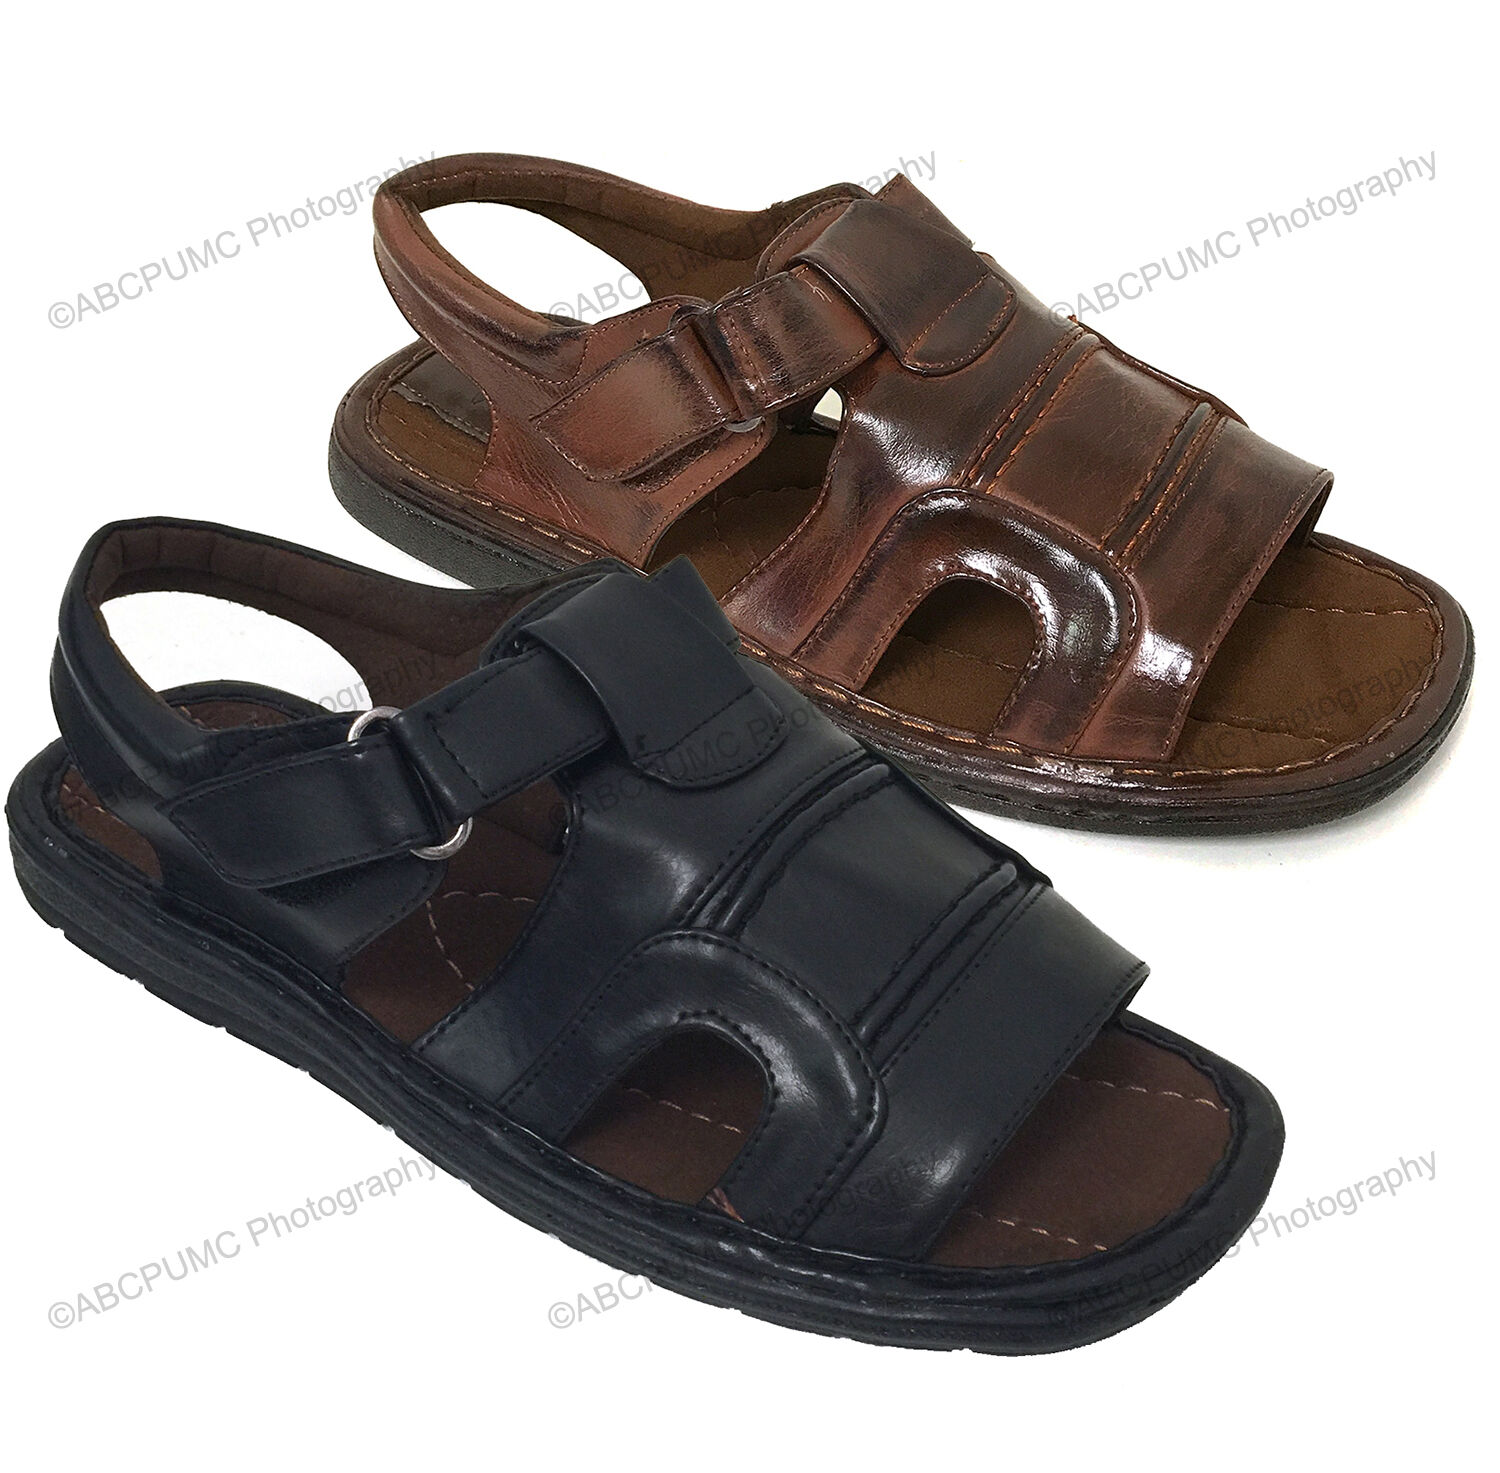 Mens Fisherman Sandals Hook and Loop Open Toe Casual Slippers Summer Shoes Sizes